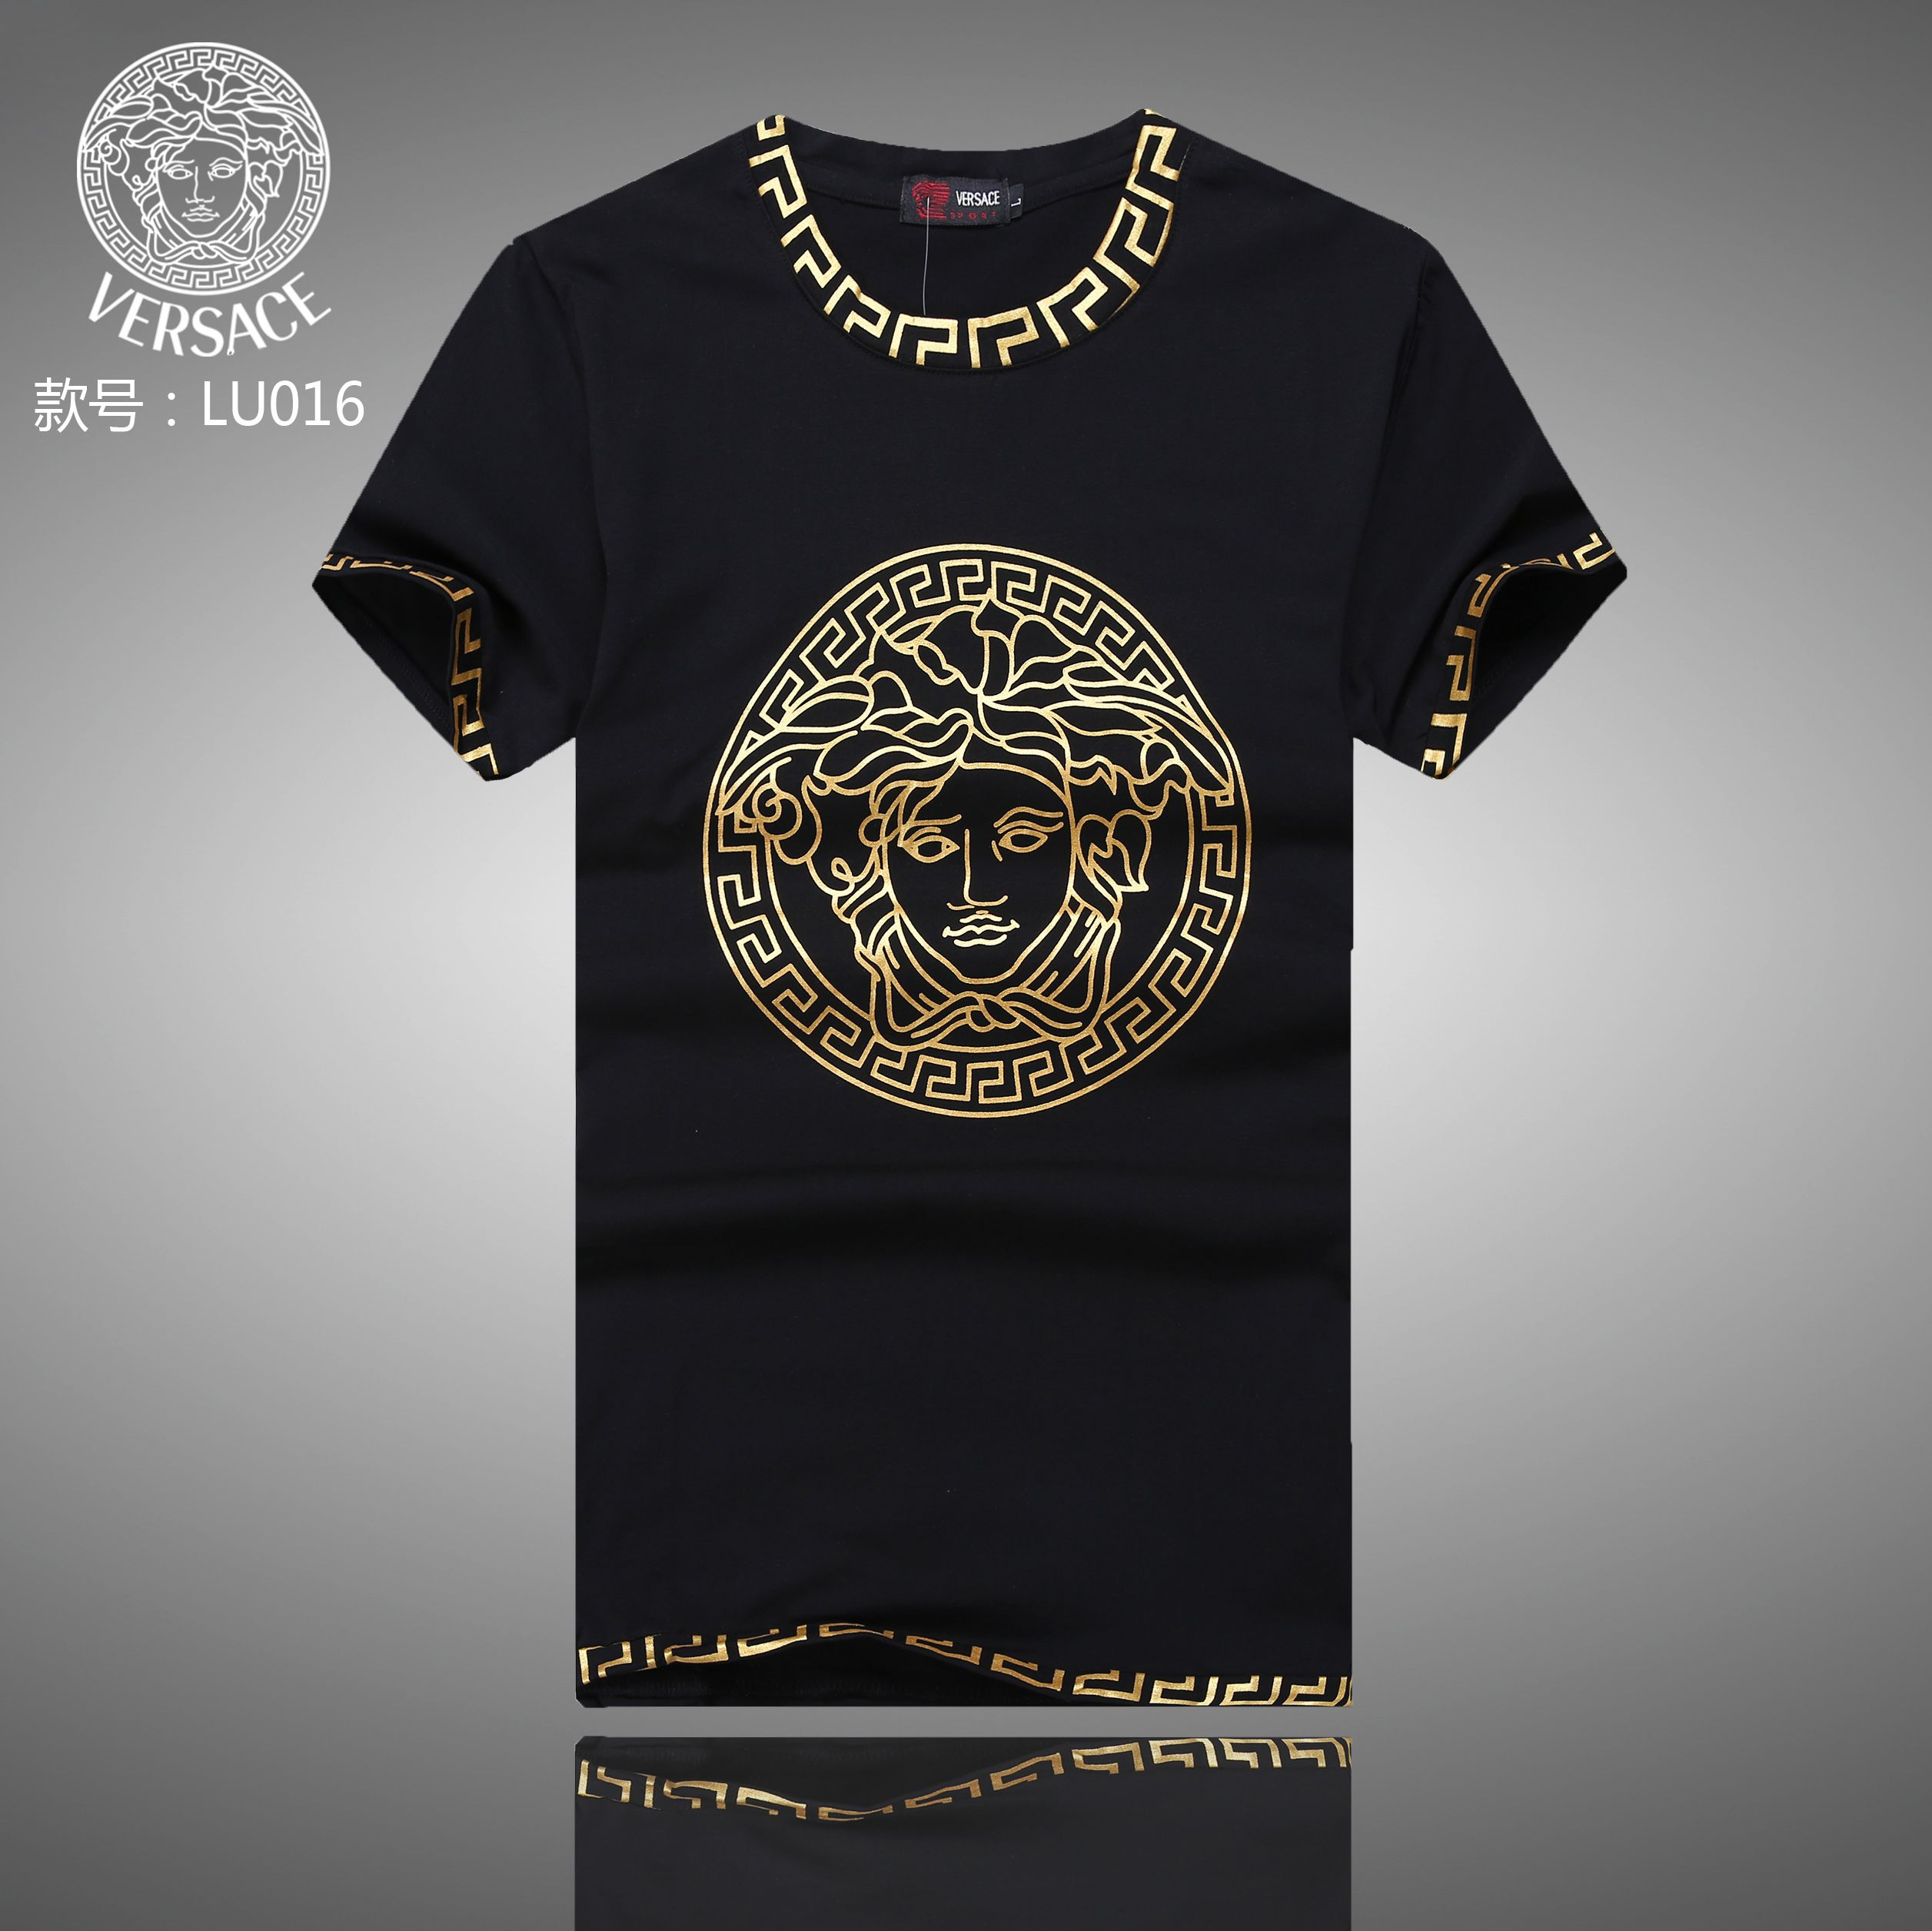 8eb837300f Replica Versace T-Shirts for men #256027 for cheap,$21 USD On sale ...